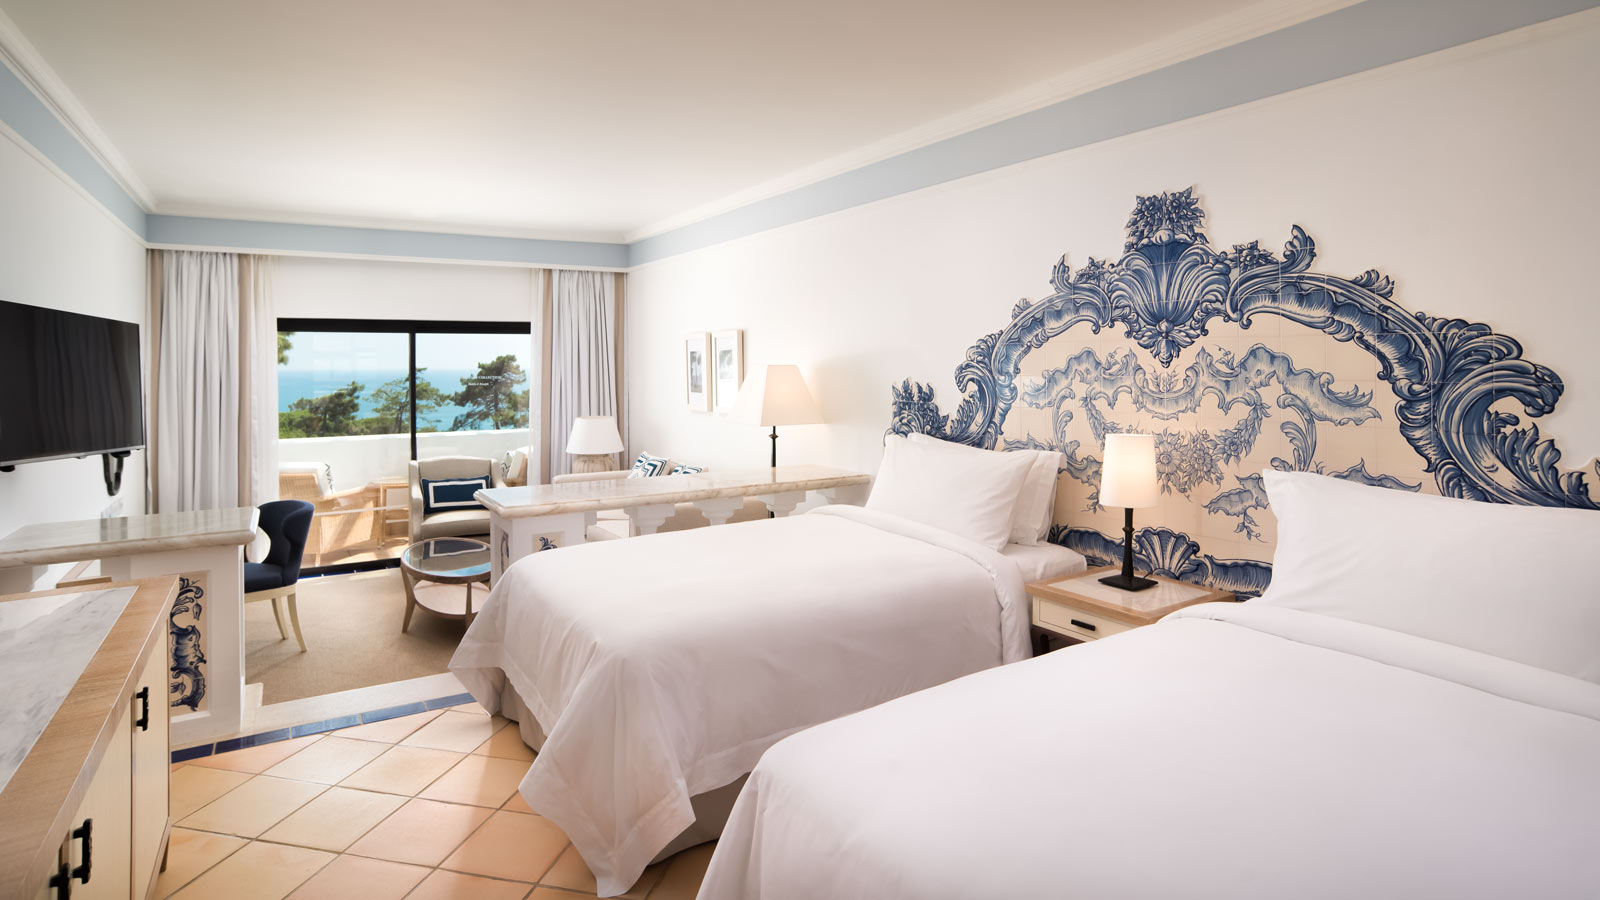 Renovated Grand Deluxe Rooms